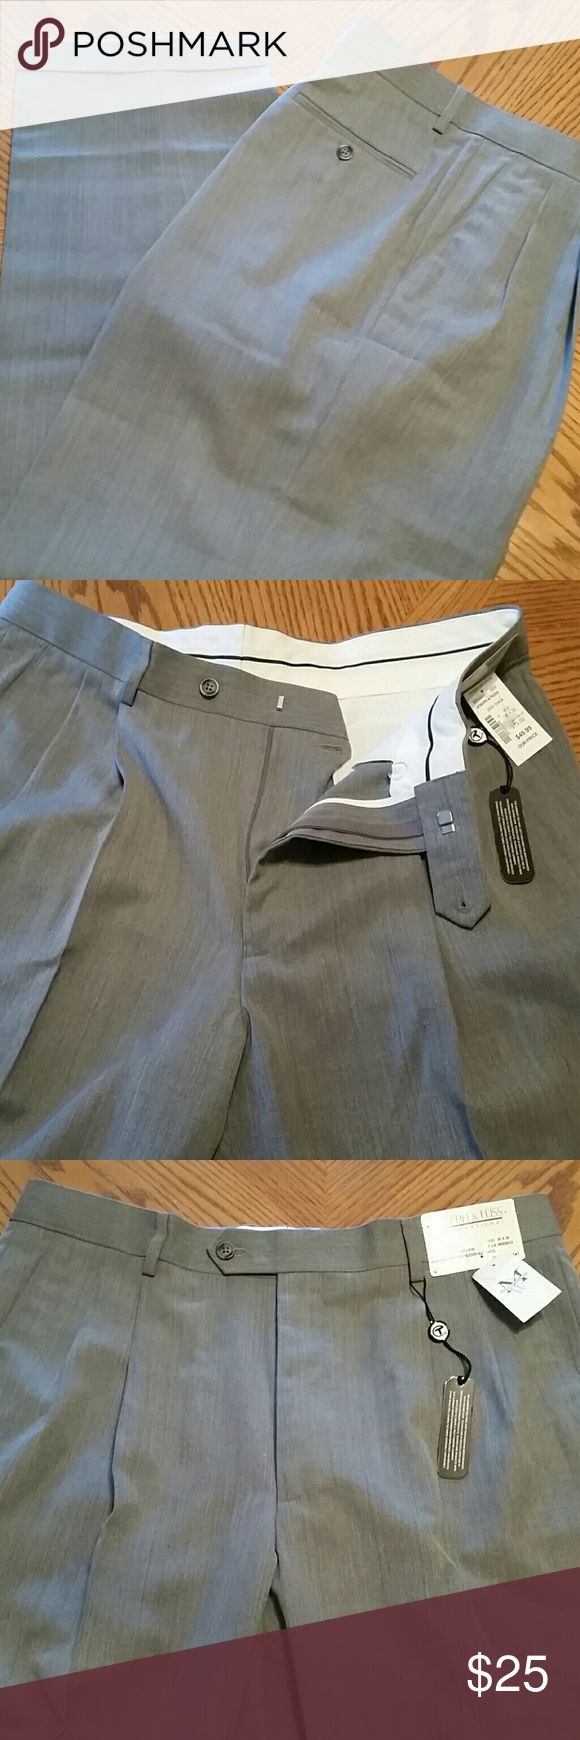 Joseph & Feiss Men's Slacks NWT!!! Gray men's slacks. 36x30. Hem is approx 9 inches across. 55% polyester 45% wool. Original price is $75. Paid $50 on sale. Joseph and Feiss Pants Dress